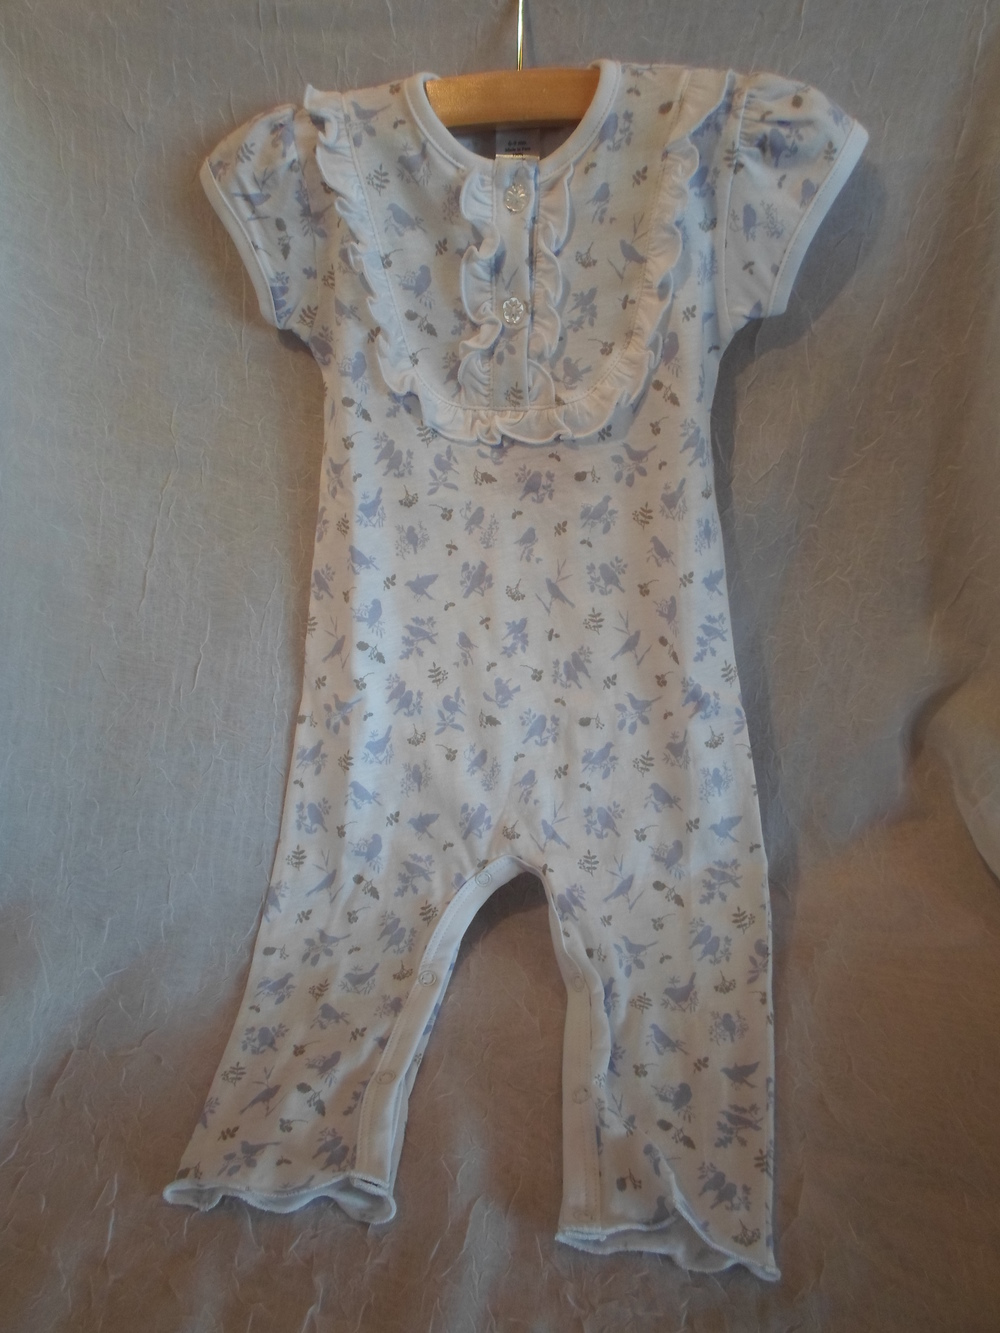 Feather Baby Organic Pima Cotton Romper Periwinkle Birds in size 0-3m $39.00 Wants 1 PURCHASED